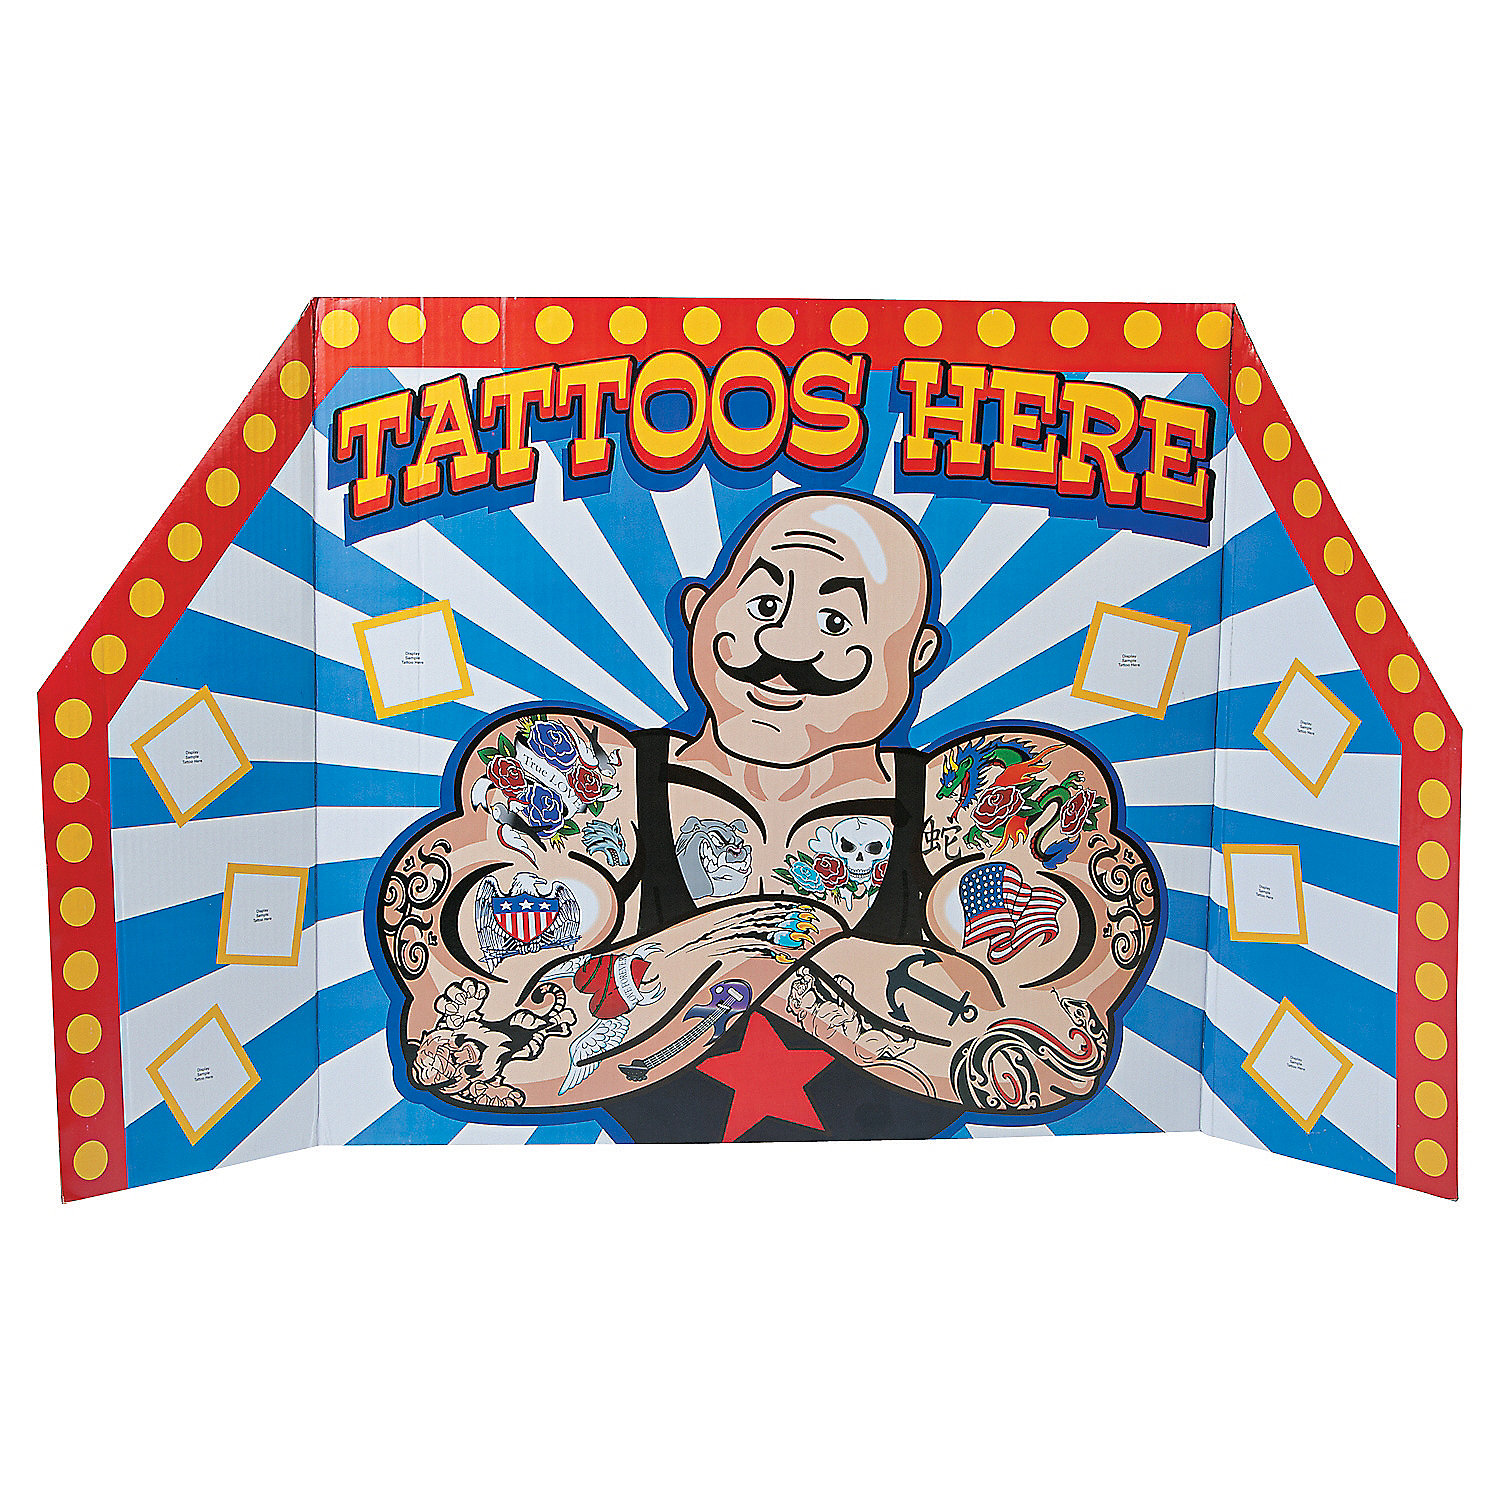 Active play for Tattoo party ideas